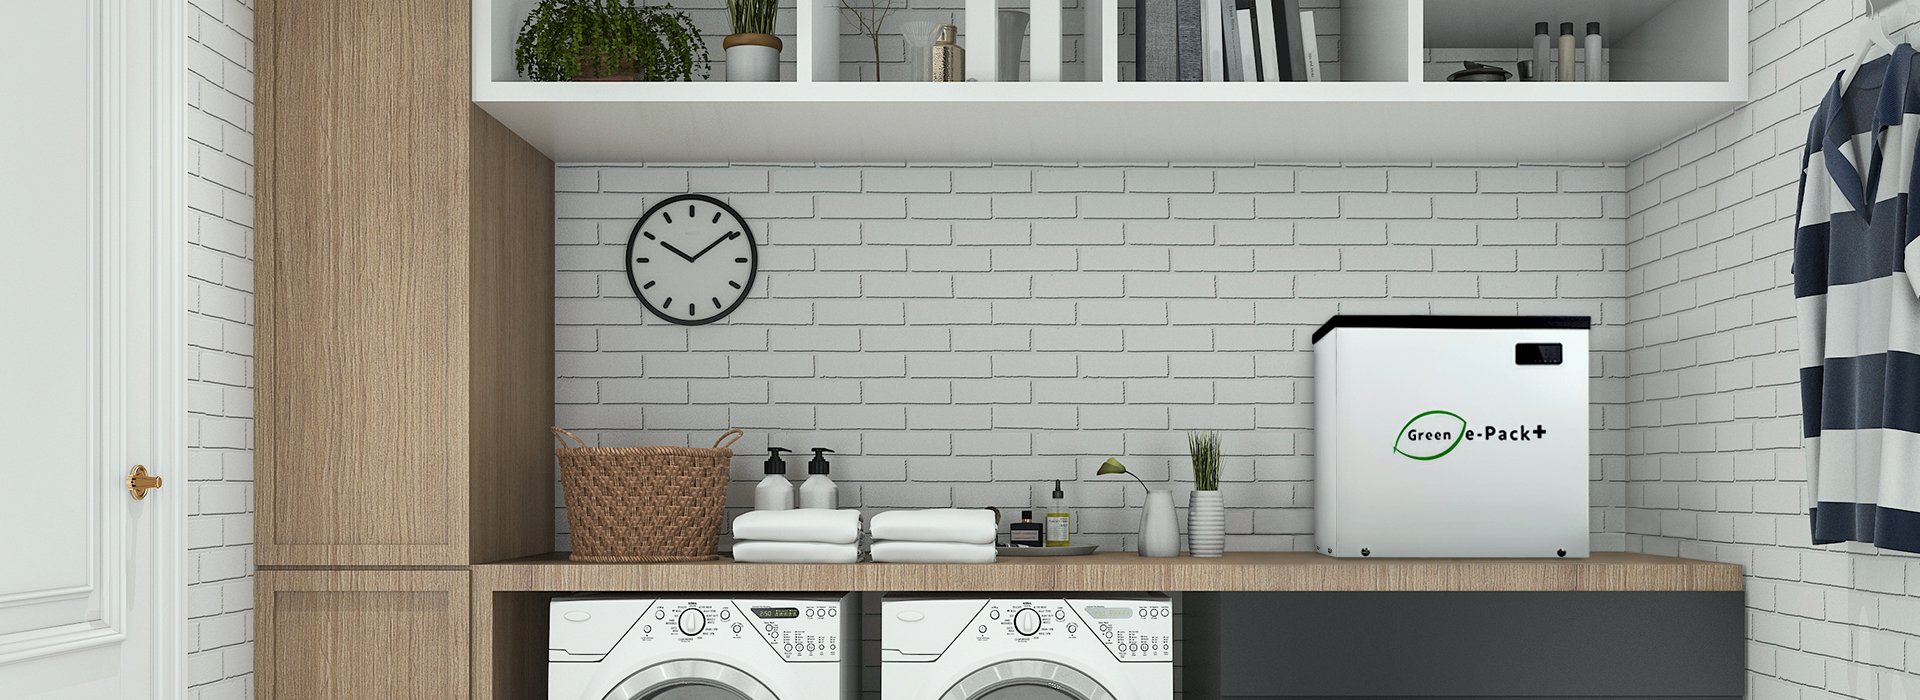 home_home_productdetails1